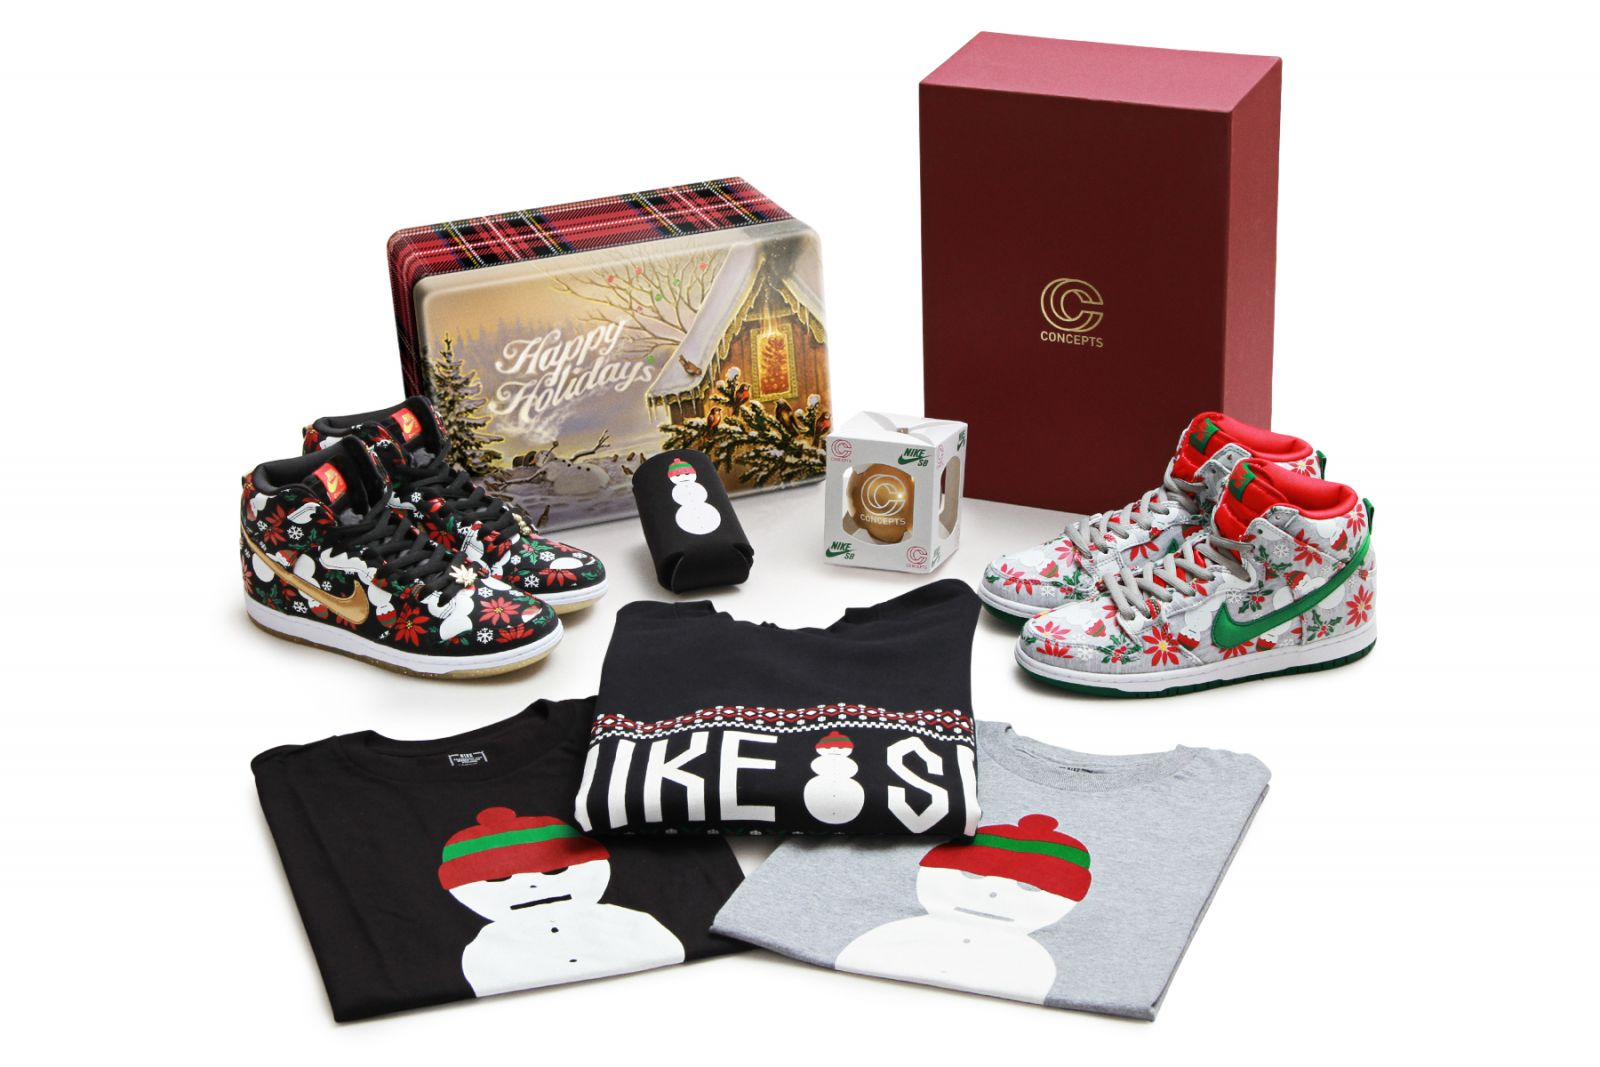 Concepts x Nike SB 'Ugly Christmas Sweater' Pack